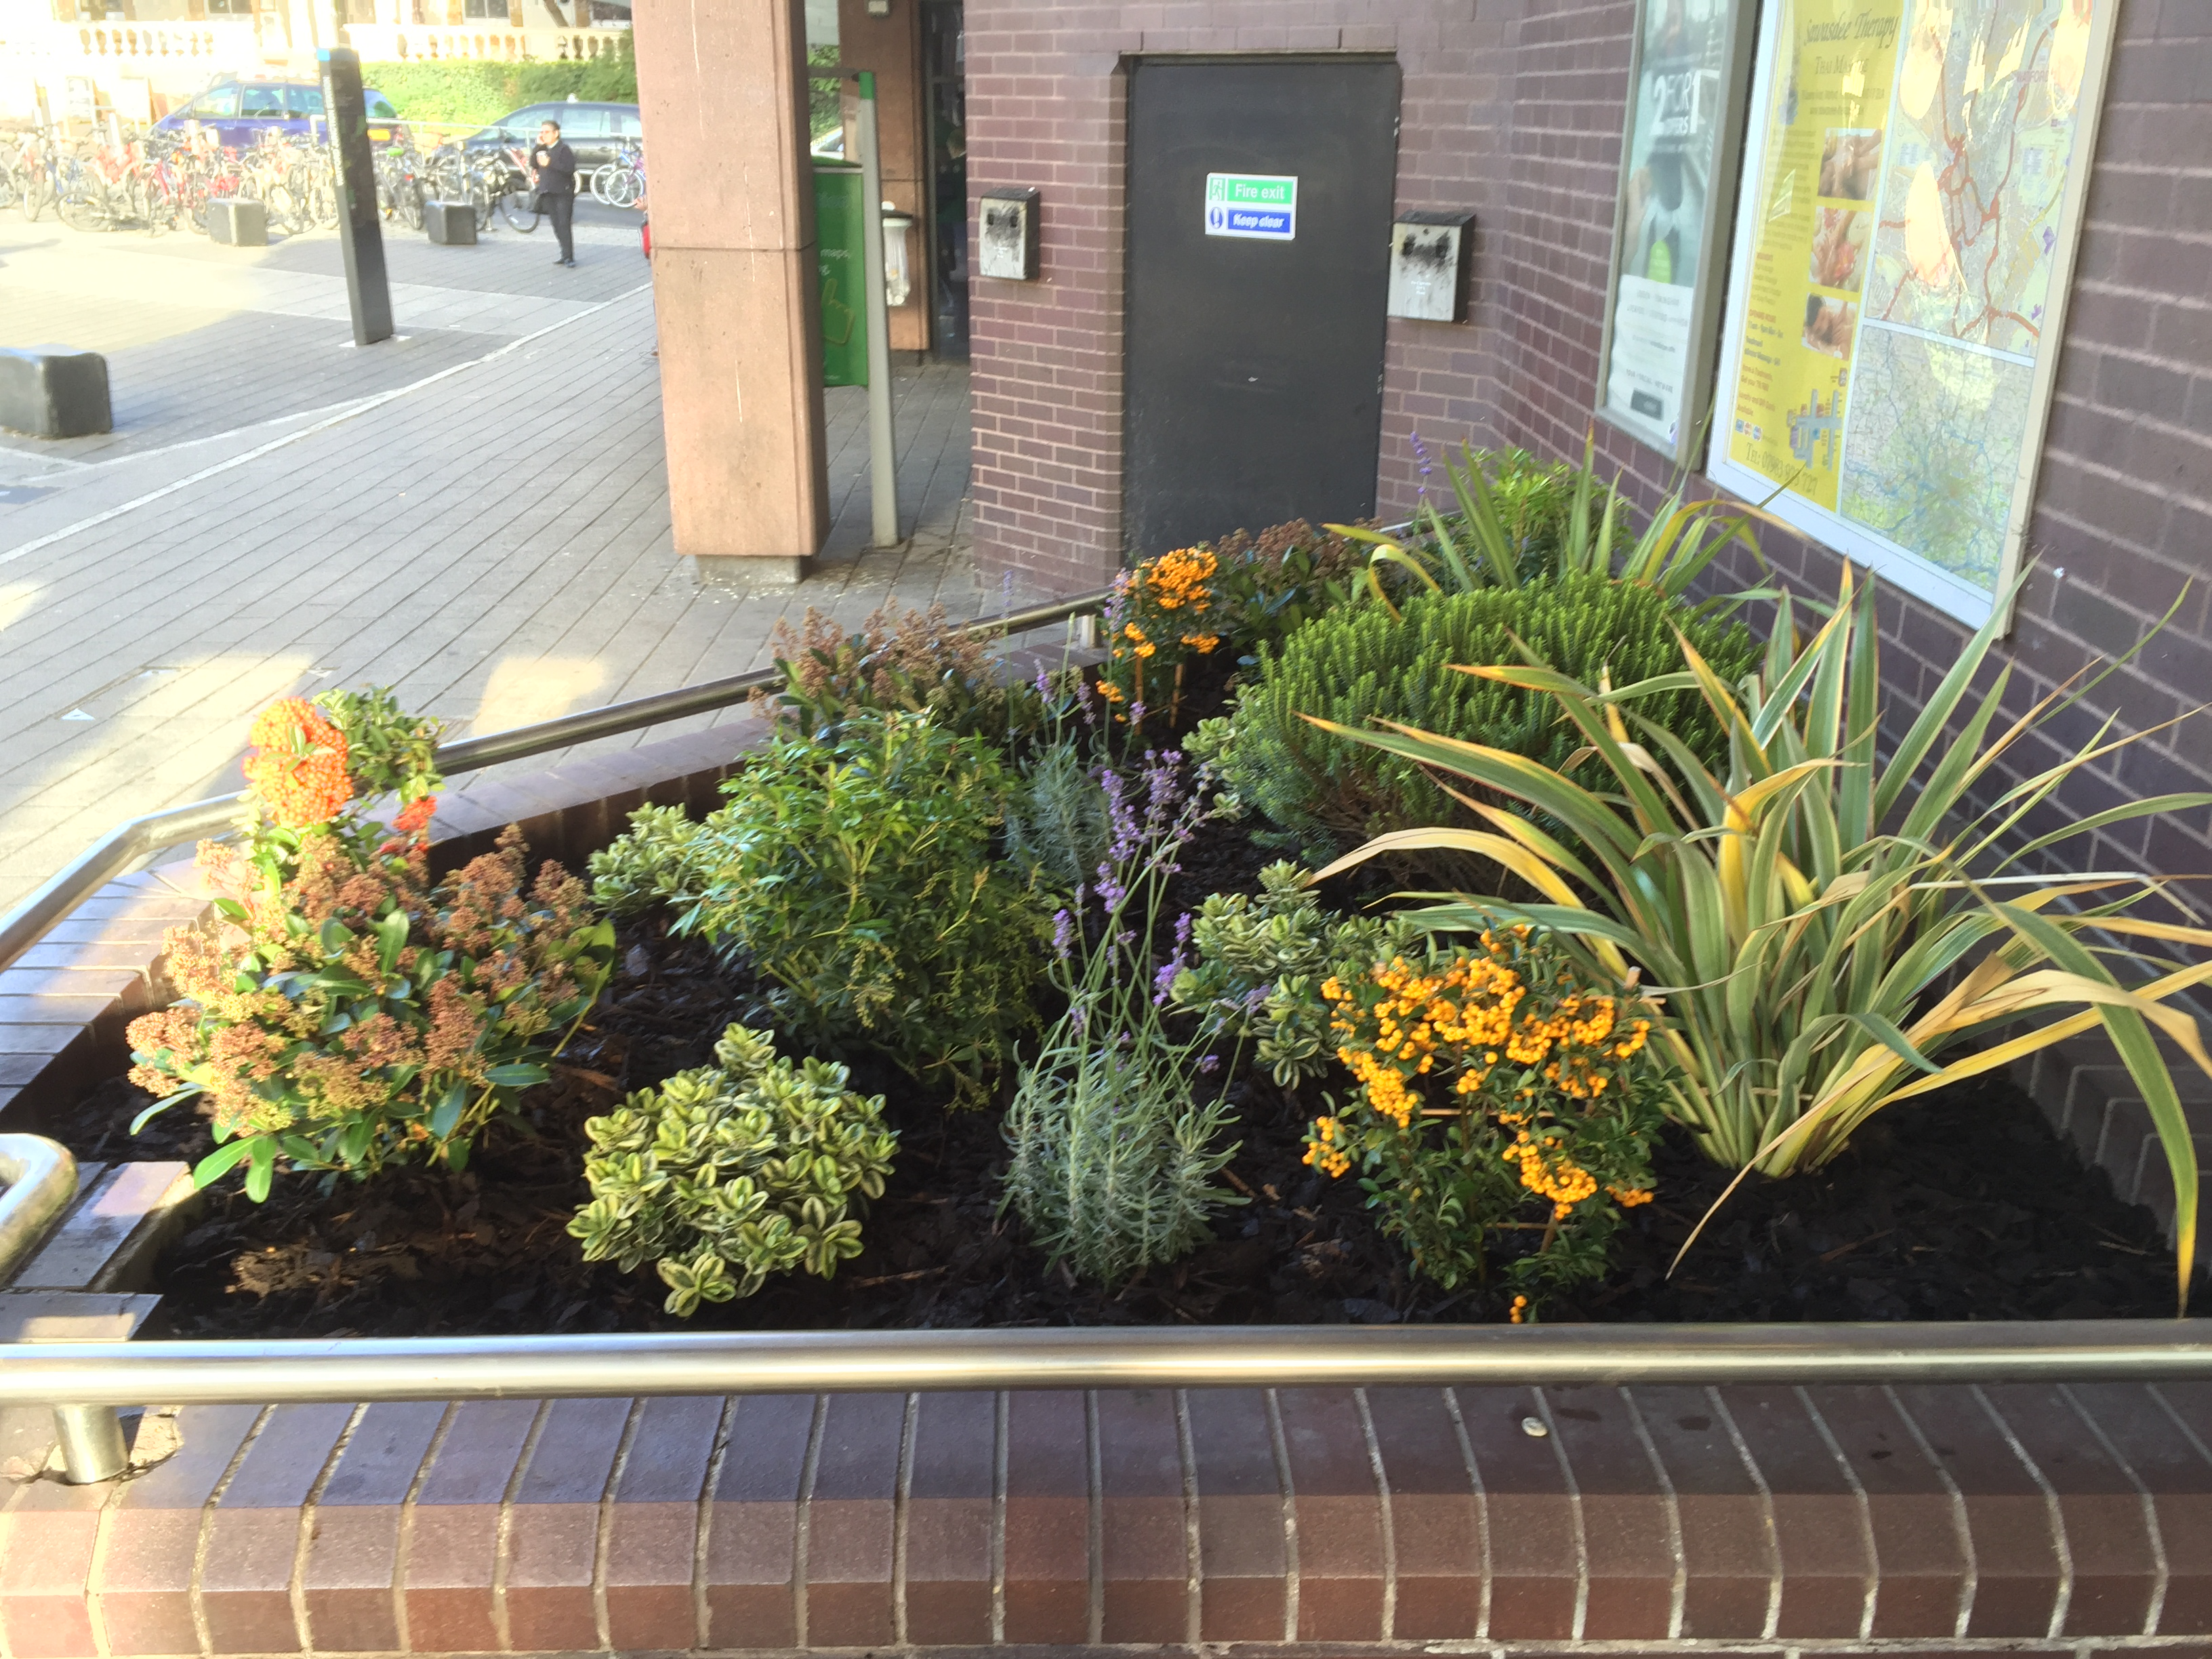 Build in flower beds in offices